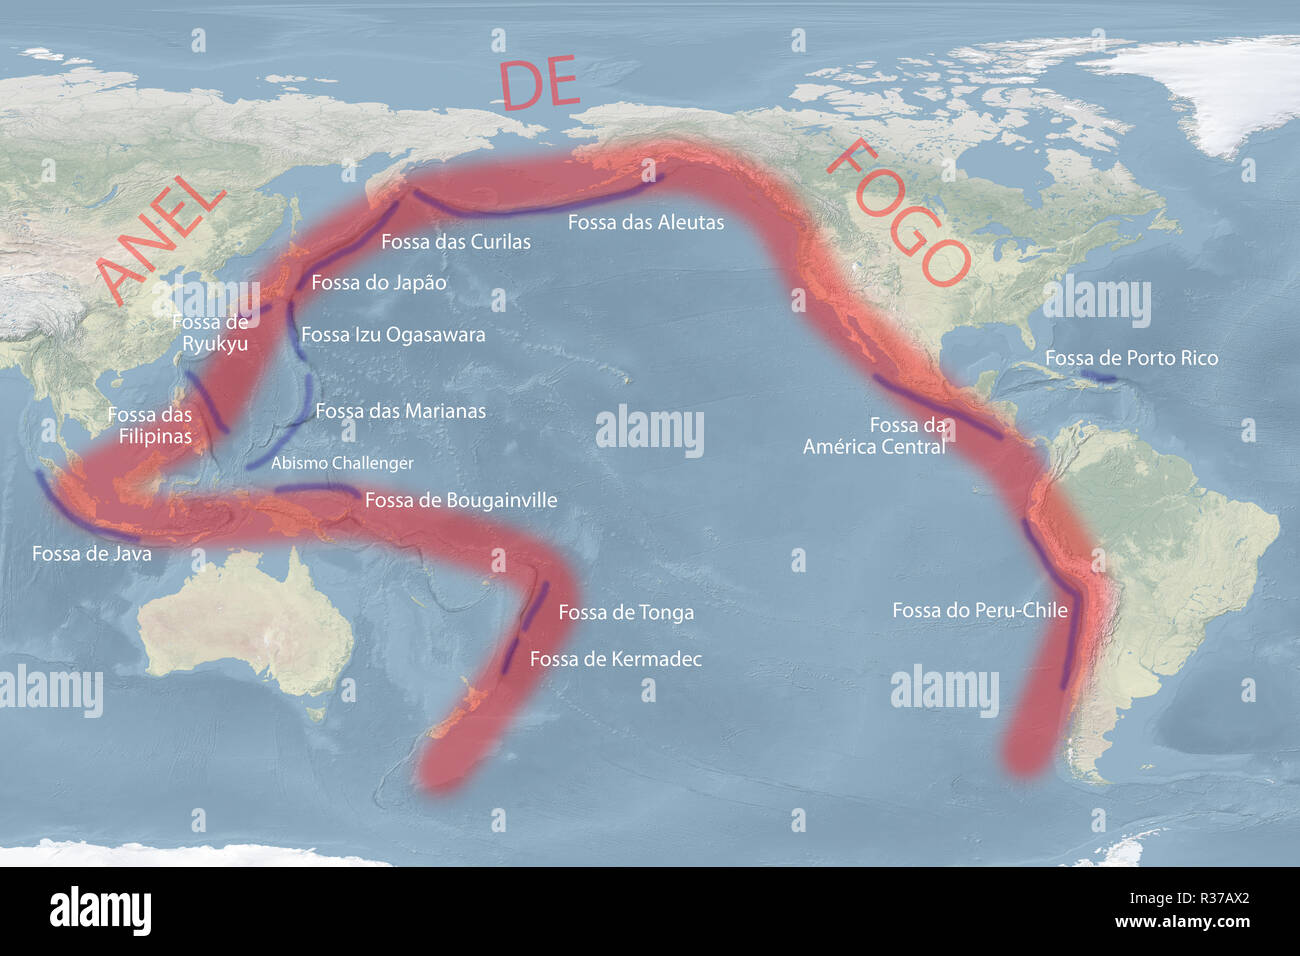 Pacific 'Ring of Fire' map (Portuguese version) with trenches (image for illustrative purposes only) - Stock Image